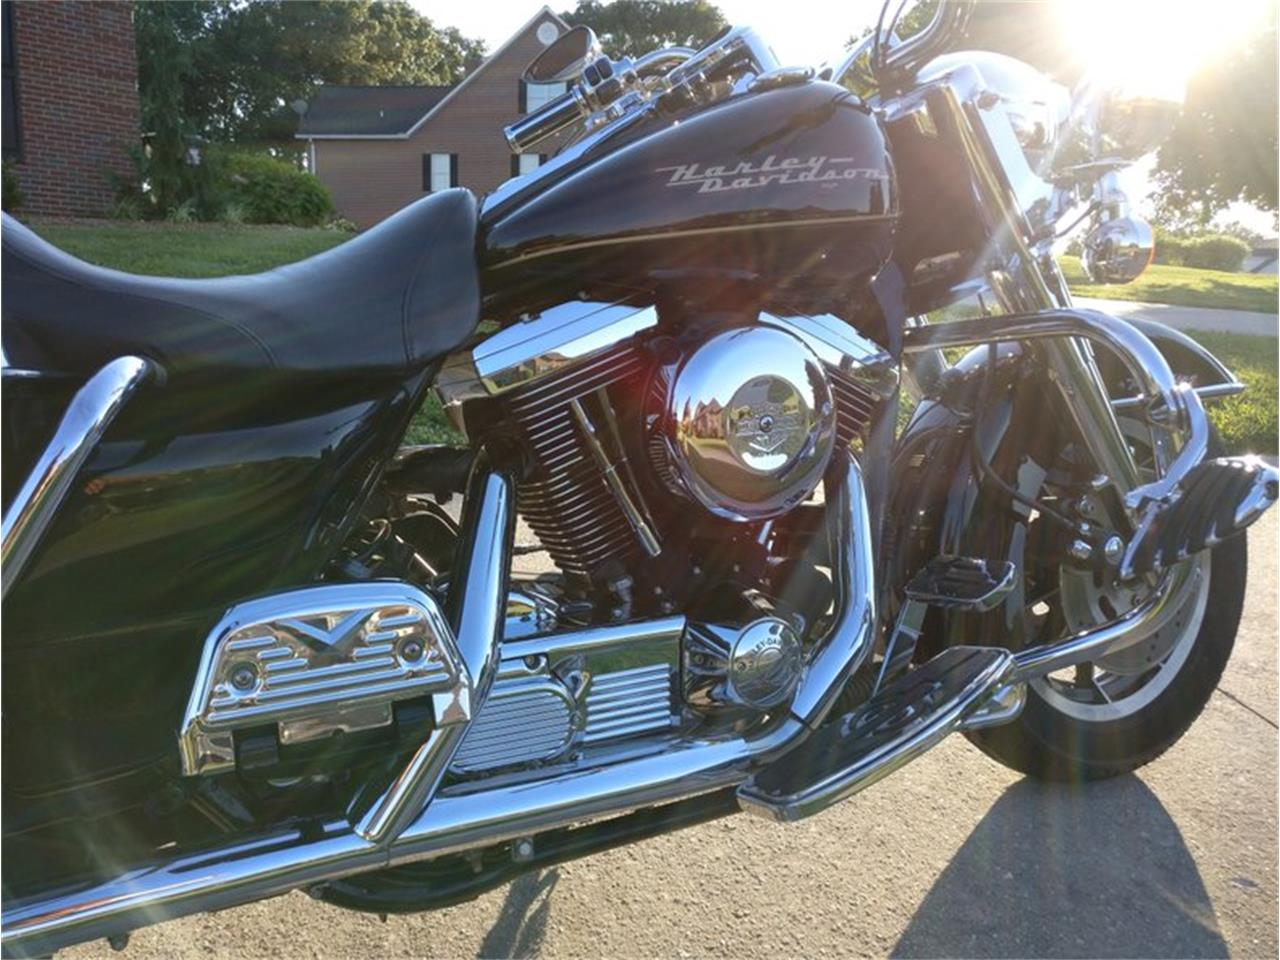 1998 Harley-Davidson Road King for sale in Cookeville, TN – photo 22